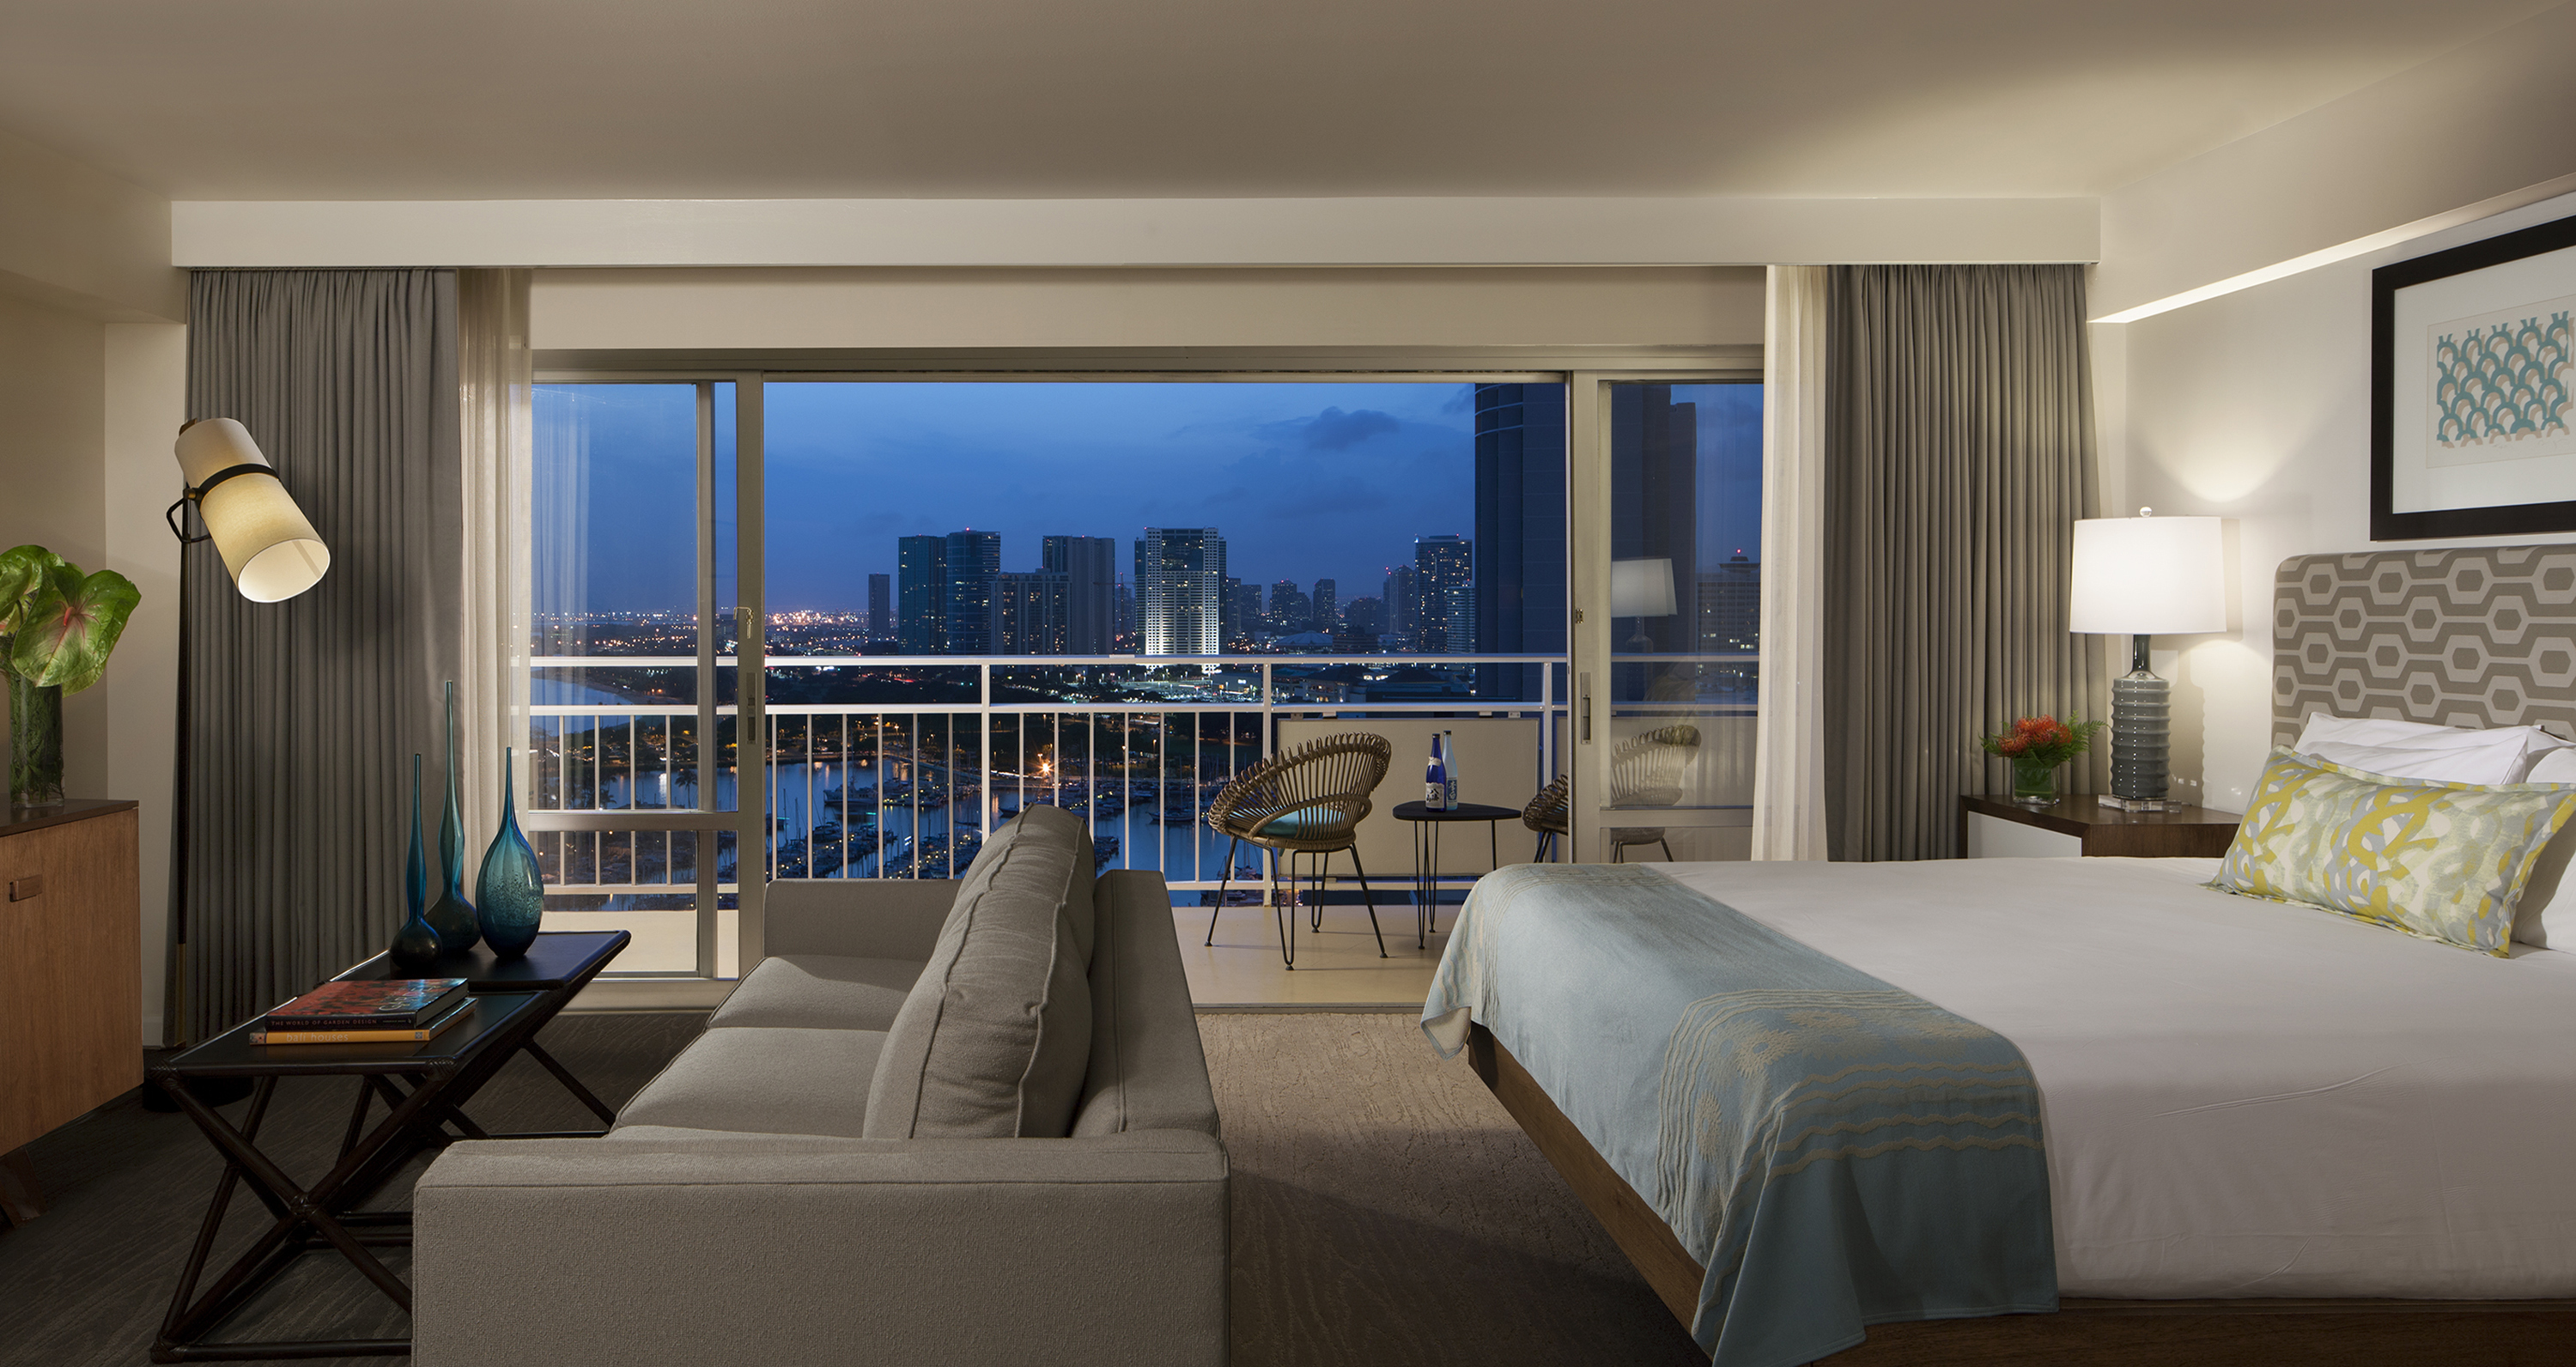 Locals Know This Waikiki Hotel Has the Best Firework Views on the Fourth of July - Ilikai Hotel & Luxury Suites, located at the gateway to Waikiki on Oahu, offers guests some of the island's best Fourth of July fireworks vantage points. (Photo: Business Wire)